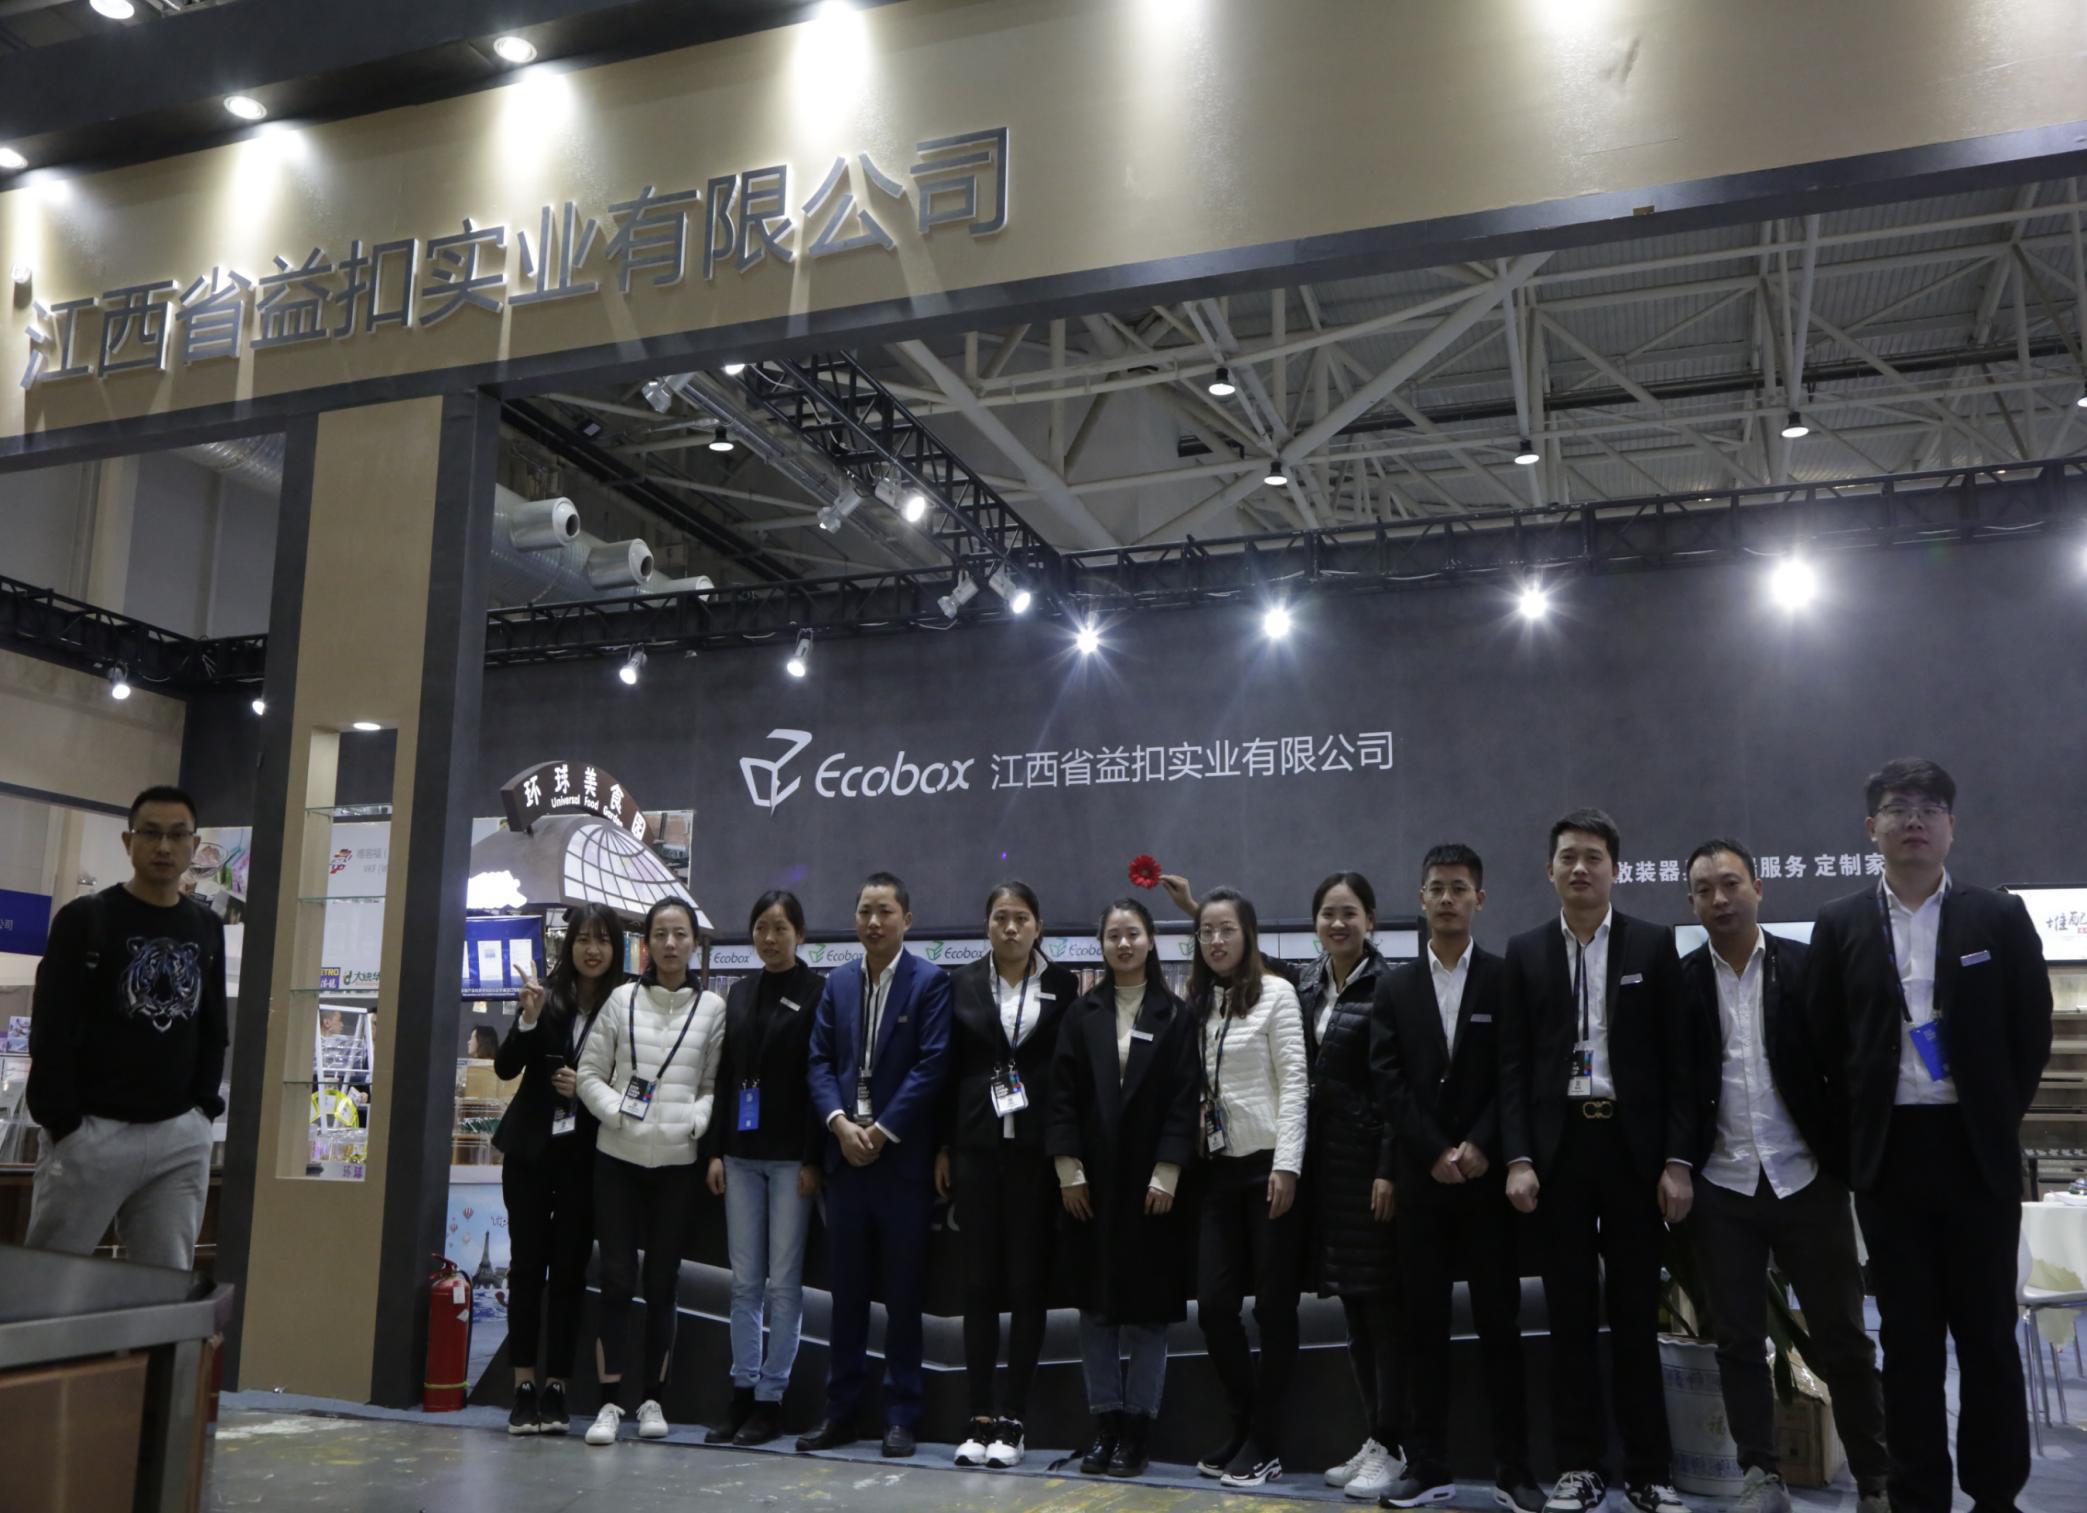 Ecobox in Qingdao Retail Exhibition (CHINASHOP 2019)